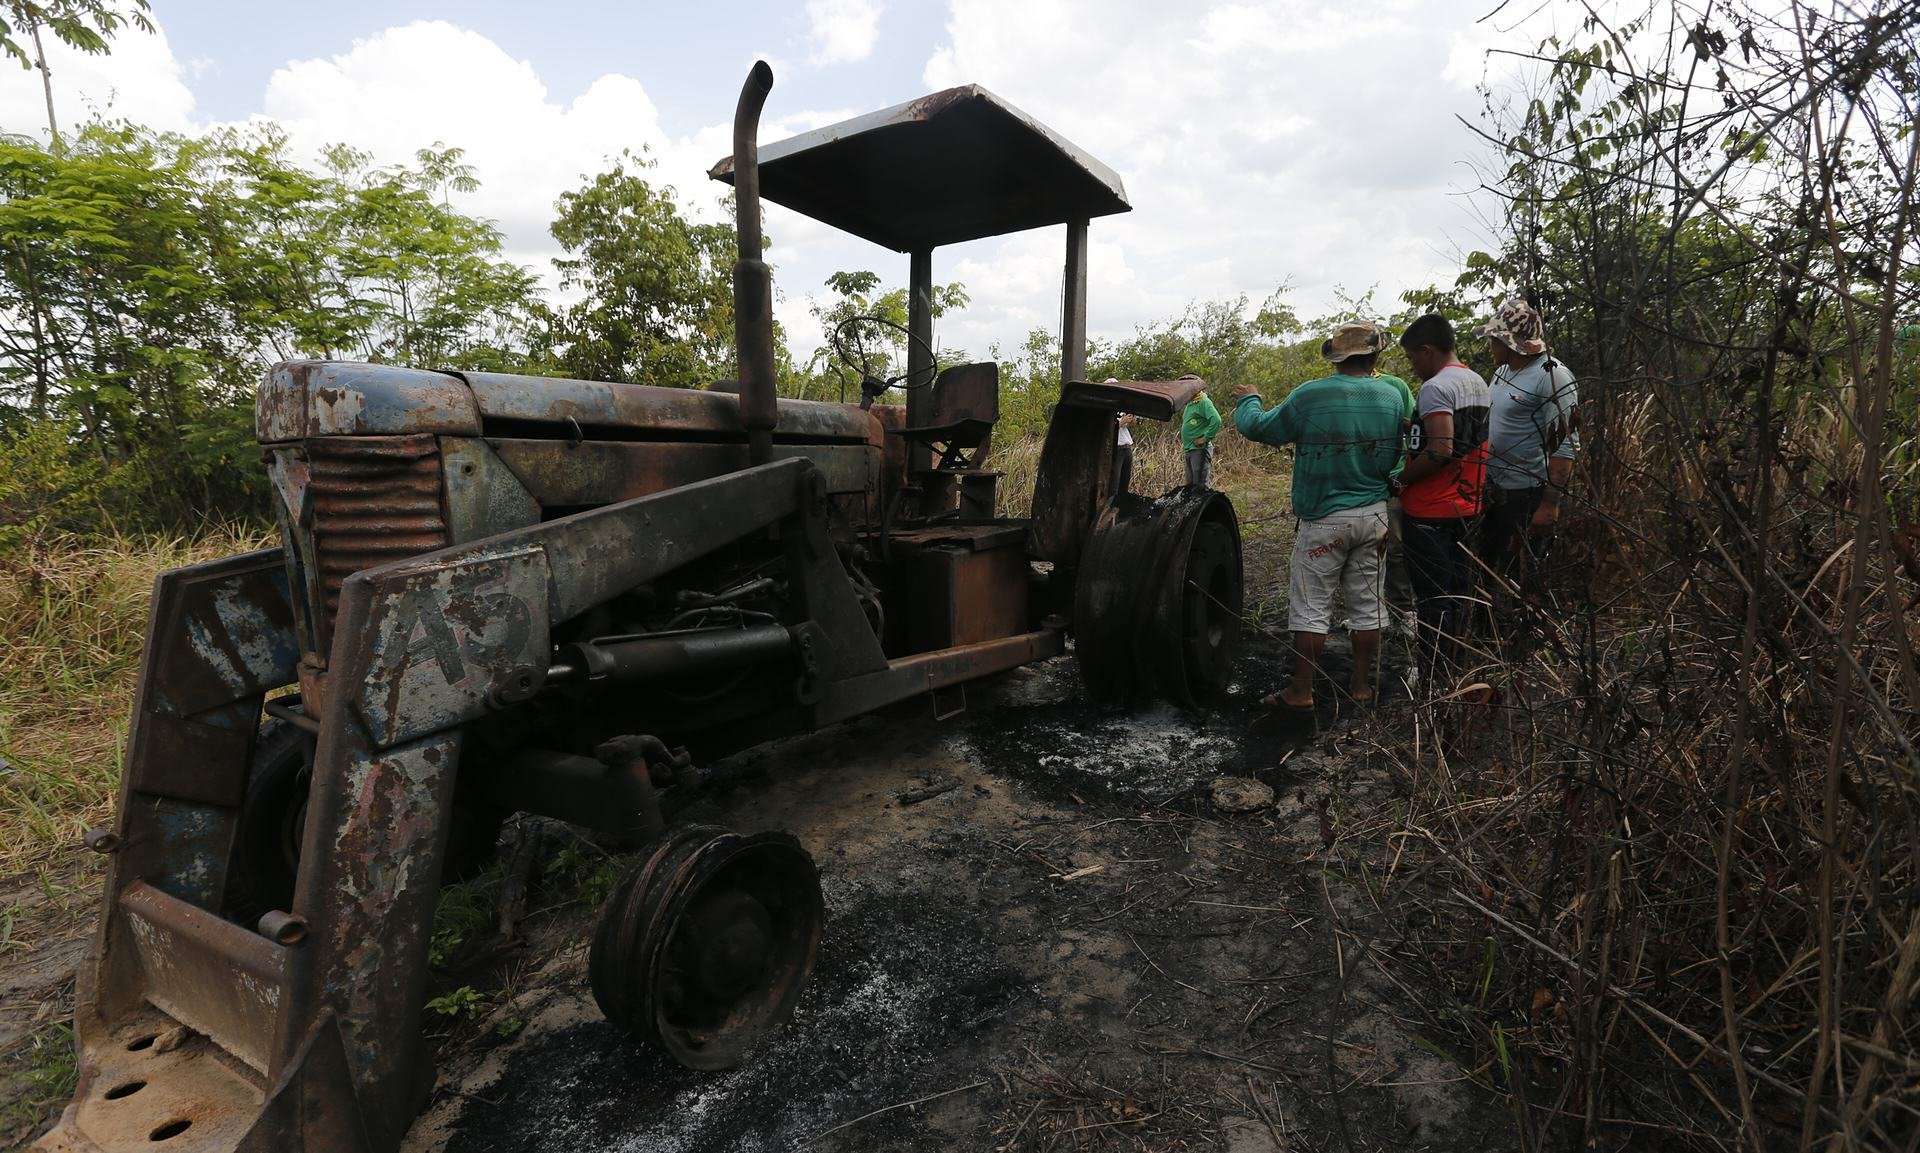 This Amazon Tribe Use Unusual Methods To Protect Their Land From Illegal Loggers UNILAD Ka'apor Indians stand next to a logging tractor that they discovered and set on fire inside the indigenous territory one month before. Photograph Lunae ParrachoGreenpeace7